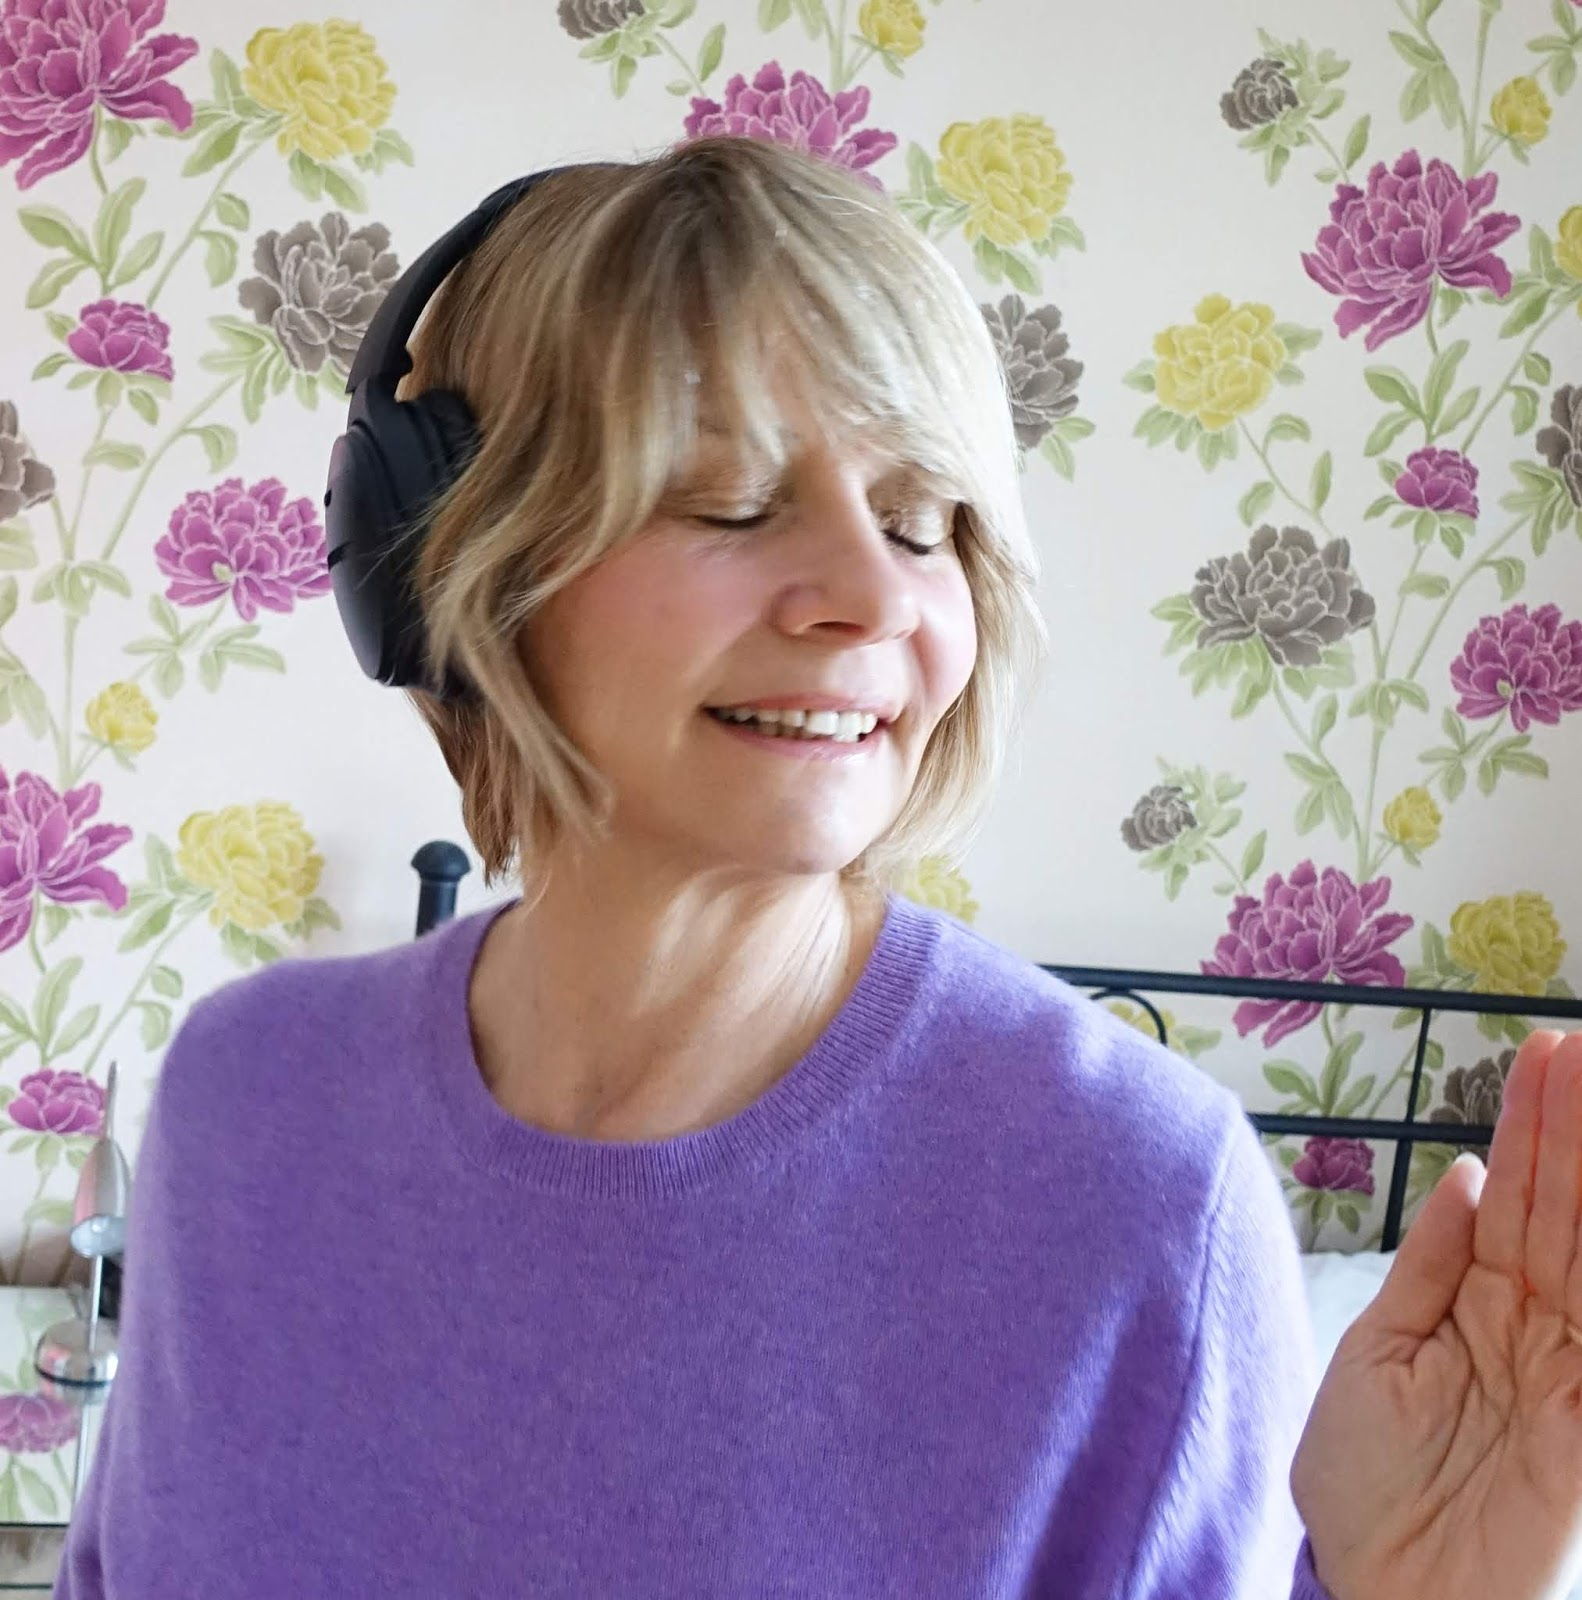 Over 50s woman listening to music with headphones on